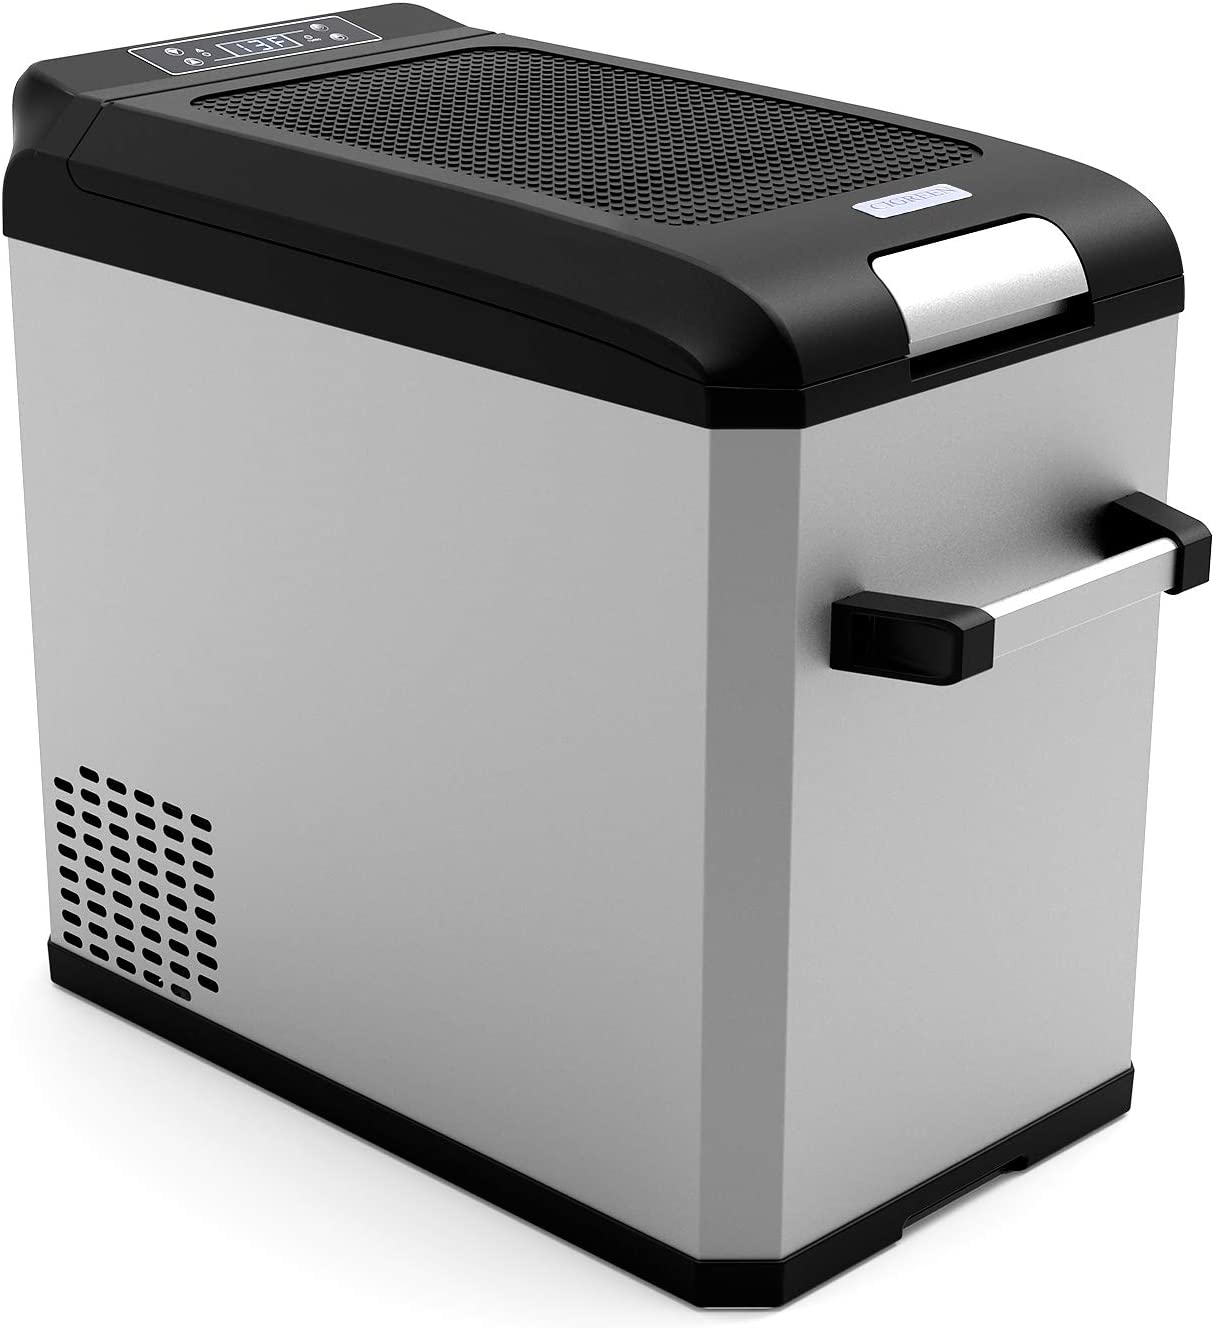 CIGREEN 44 Quart (42 Liter) Portable Refrigerator, Compressor Electric Powered Portable Cooler, Fridge/Freezer for Camping, Travelling, Outdoor and Home Use -12/24V DC and 110-240 AC, DC-42F